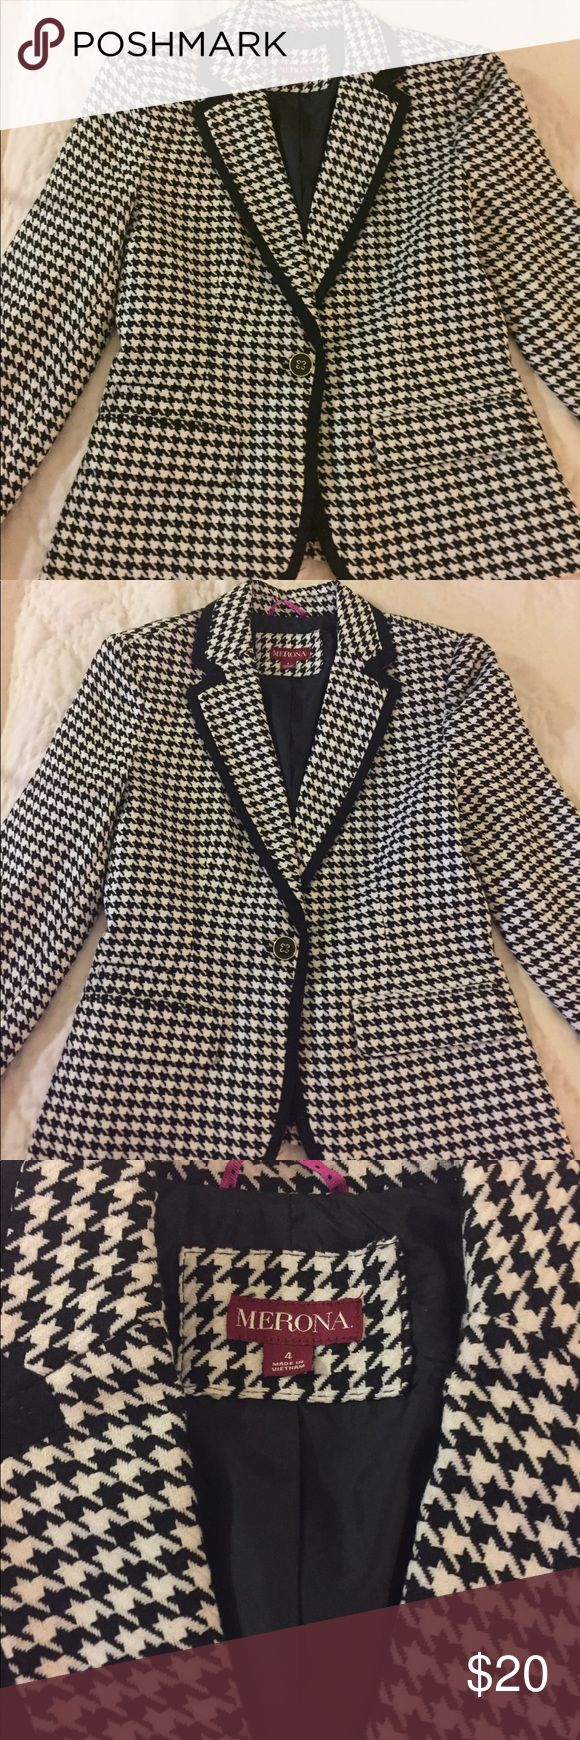 Target- Black and white checkered blazer Super cute black and white checked blazer. Never been worn! Great for work during the day and then head into the evening hours. merona - target Jackets & Coats Blazers